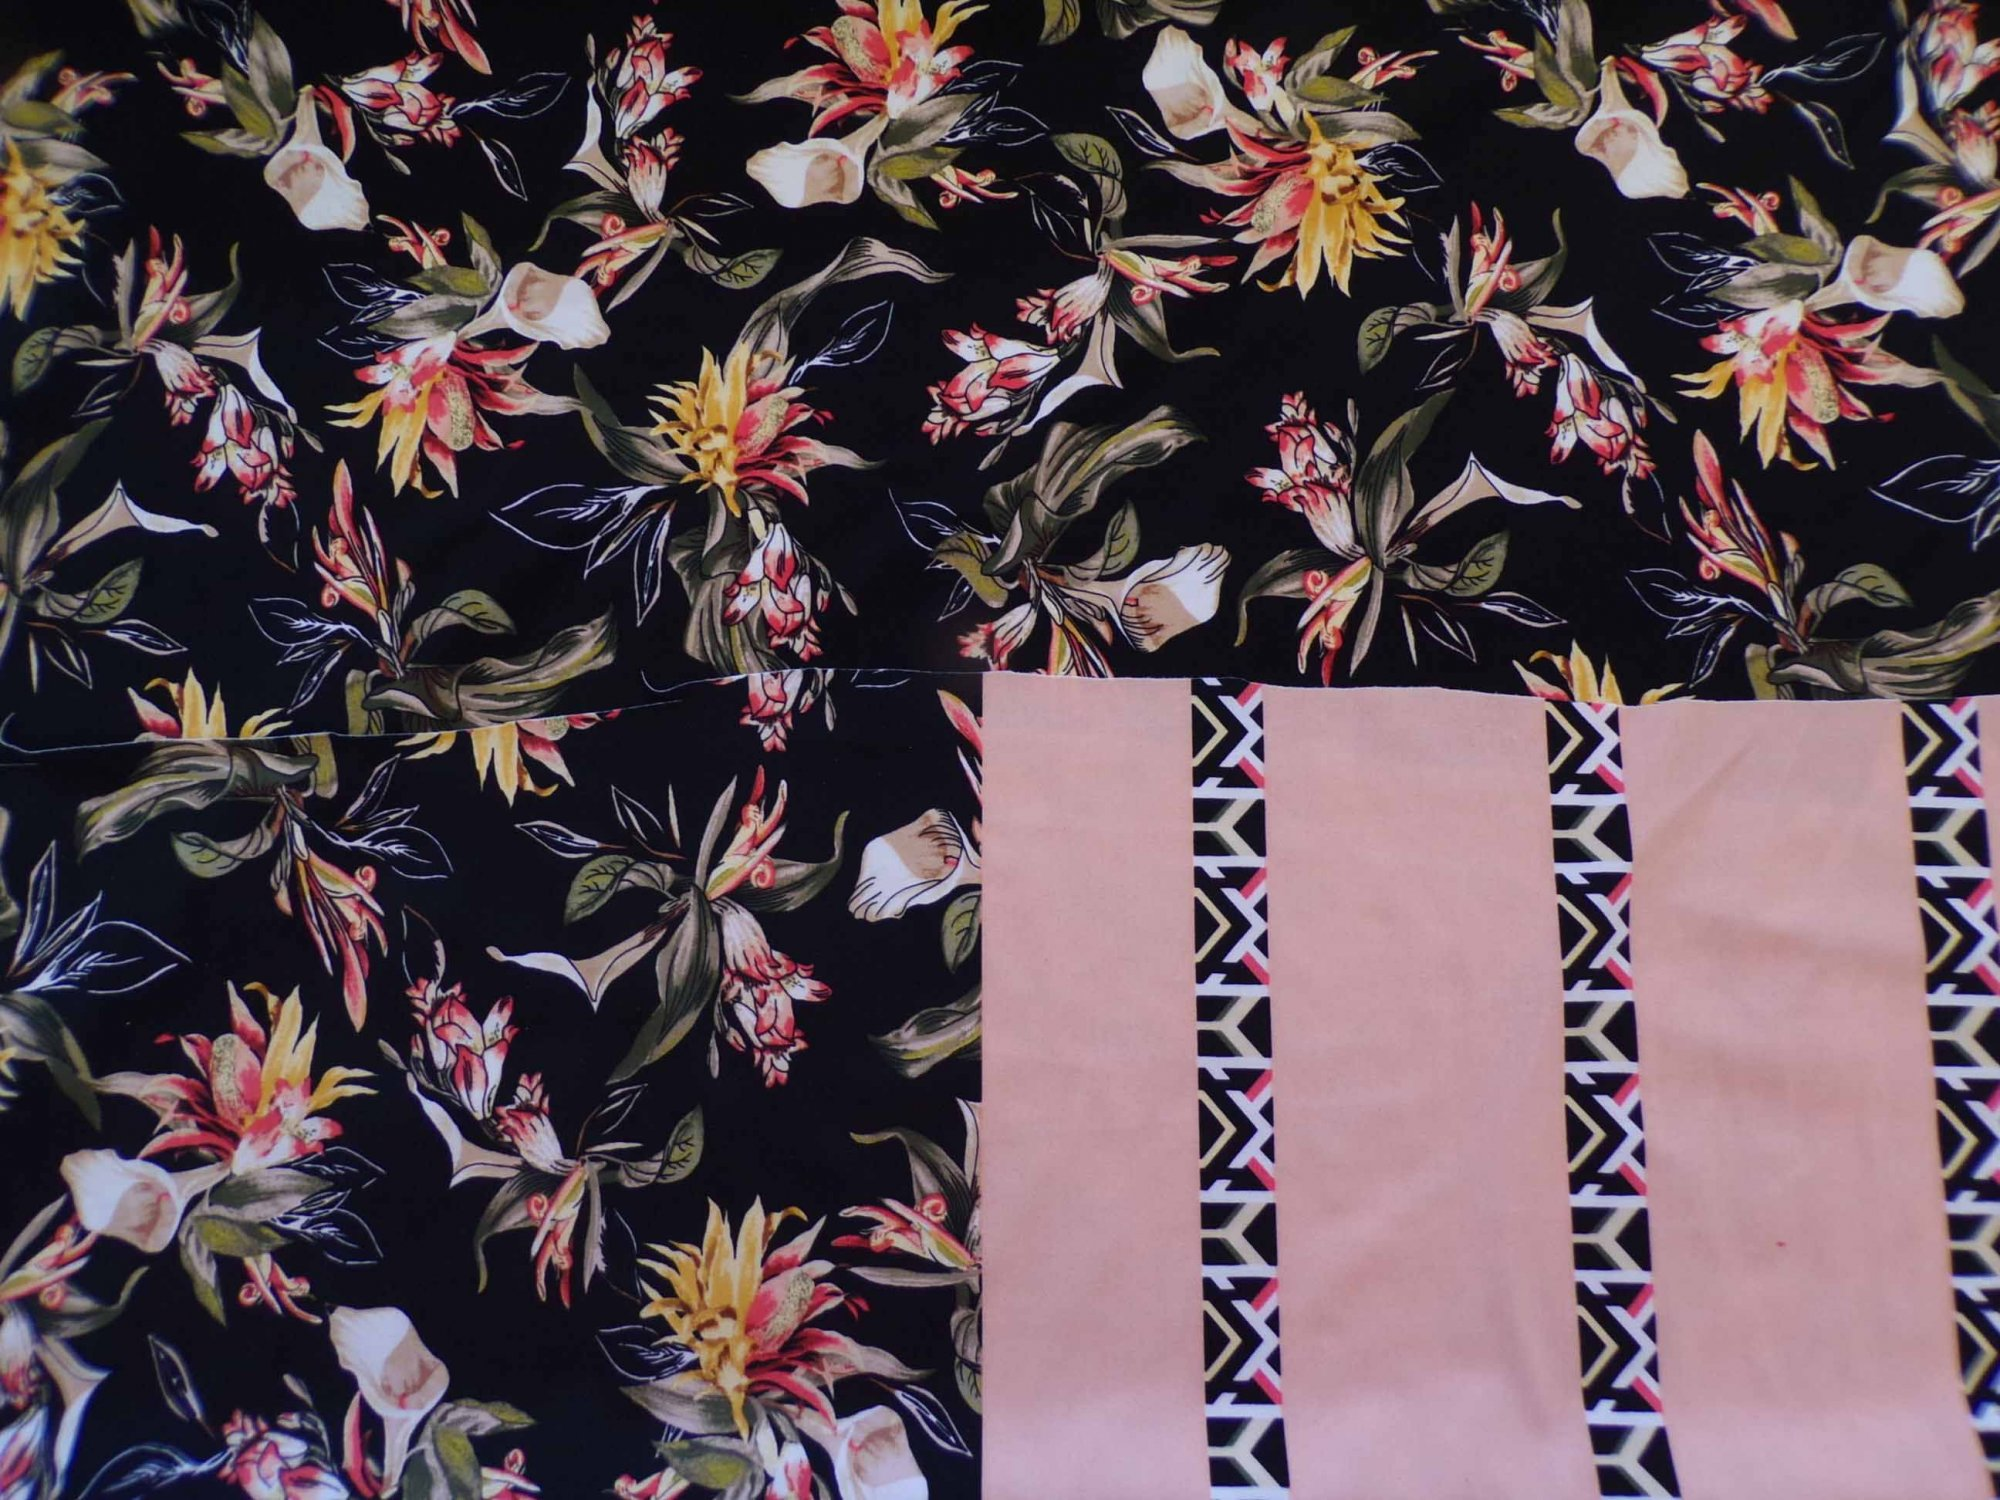 Swim/Activewear - Black and Peach Border Floral